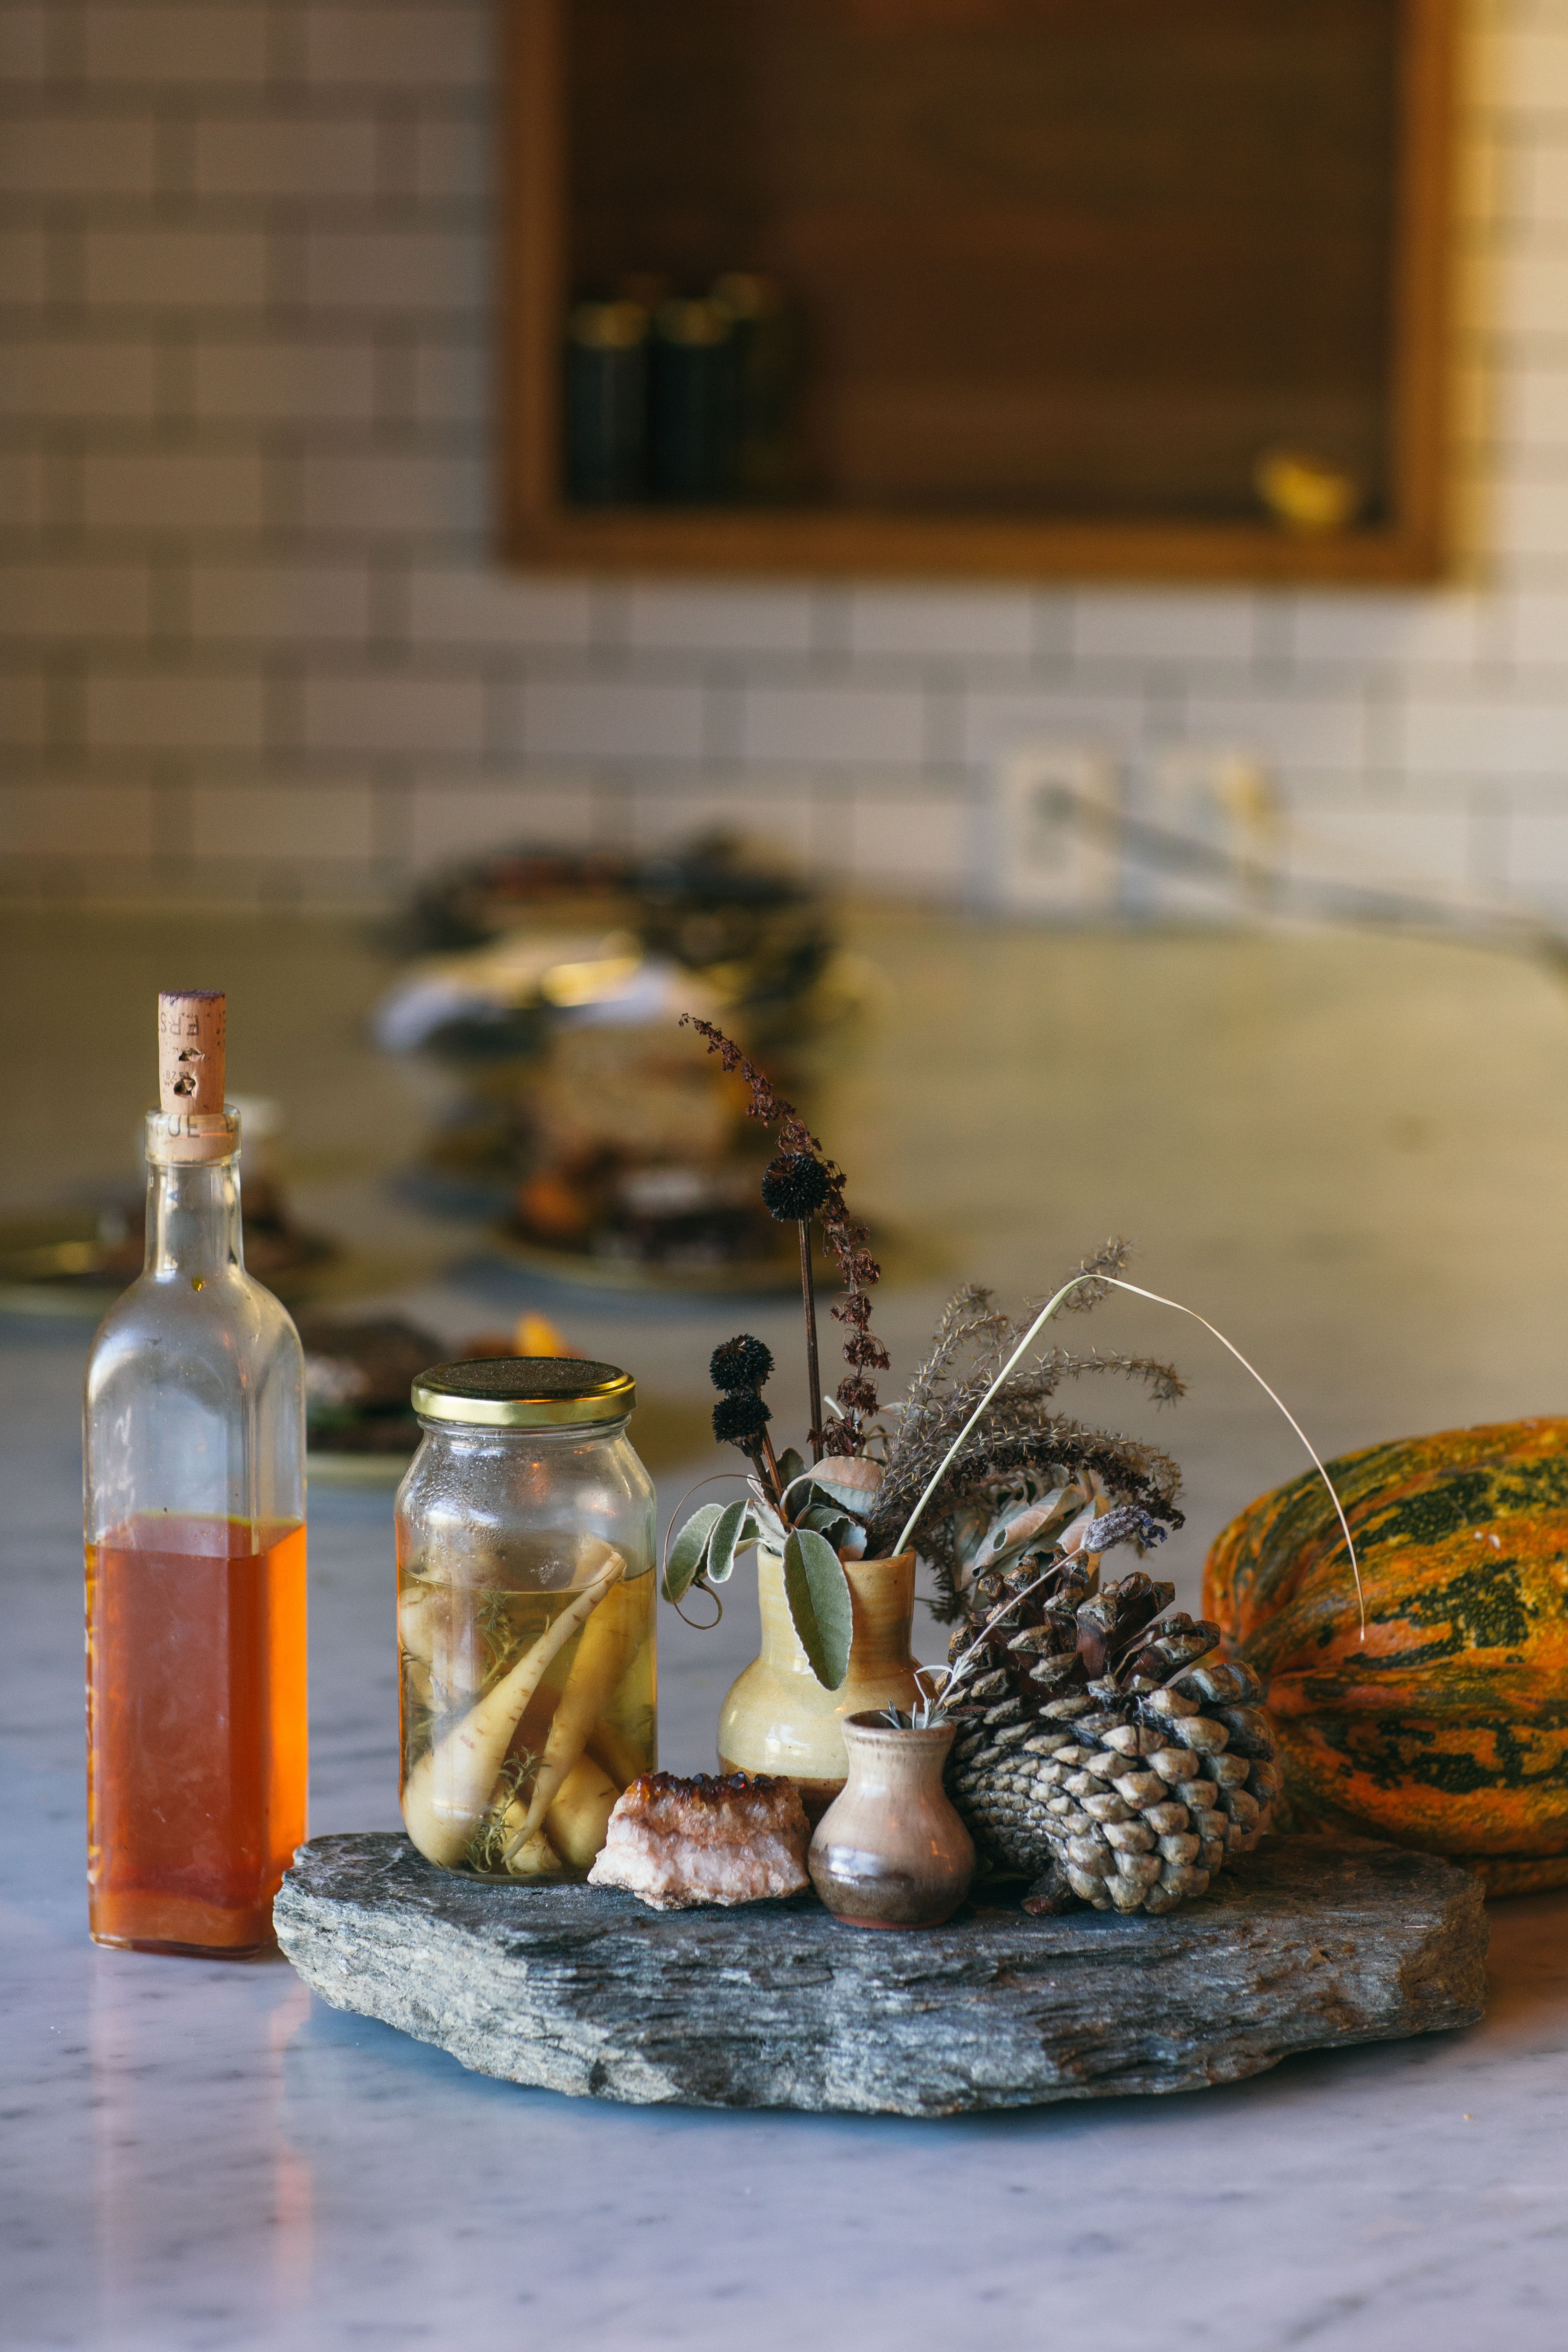 Categories: Food + Drink-The Sherwood is a retreat